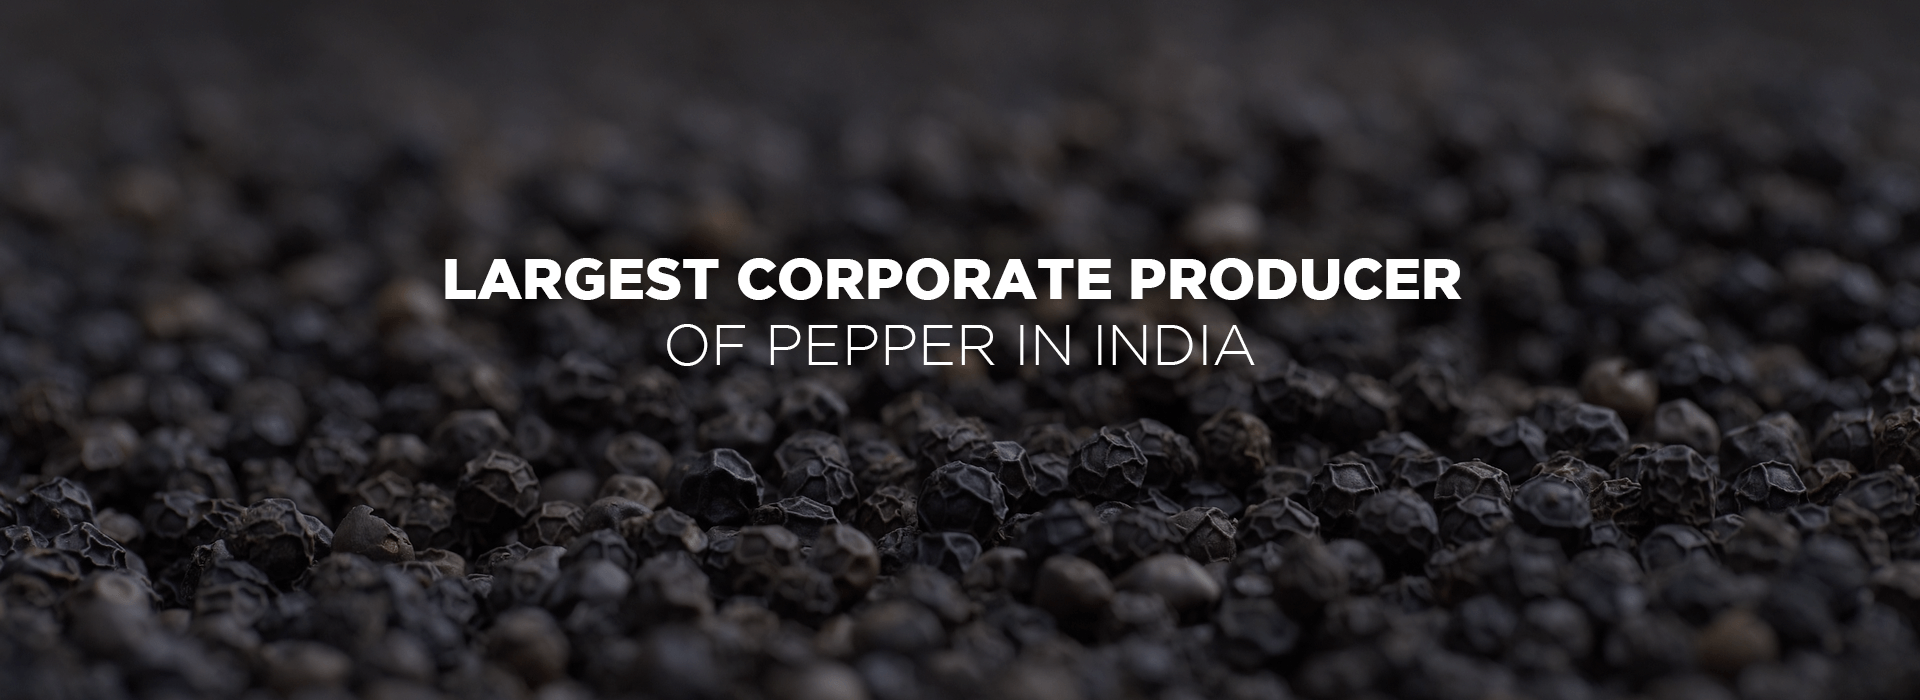 Largest Corporate Producer of Pepper in India - Tata Coffee